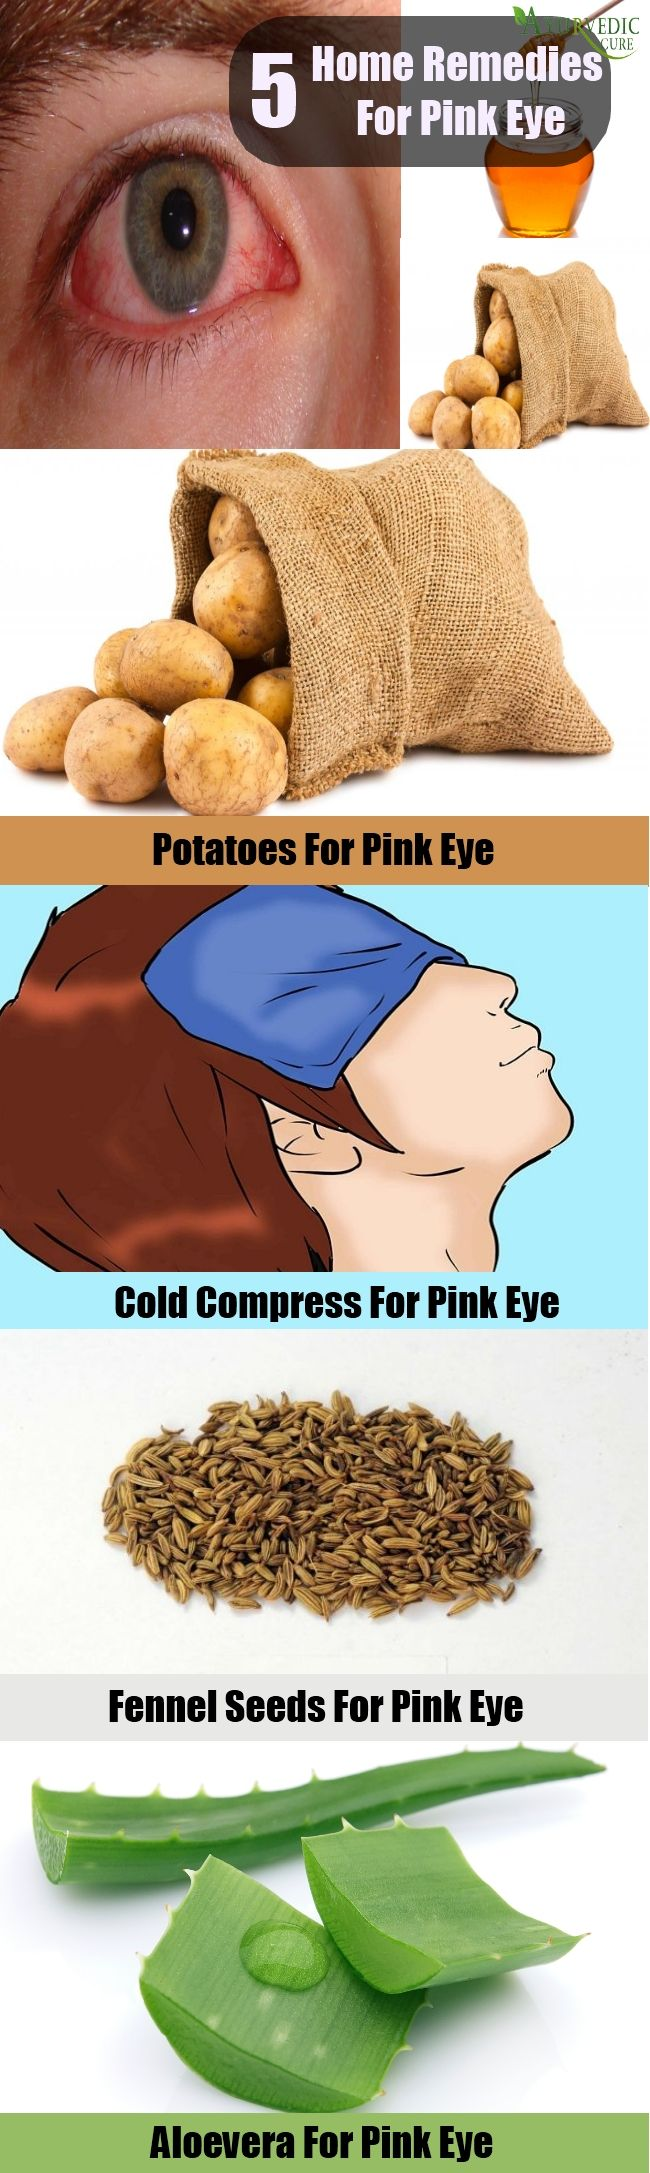 5 Effective Home Remedies For Pink Eye